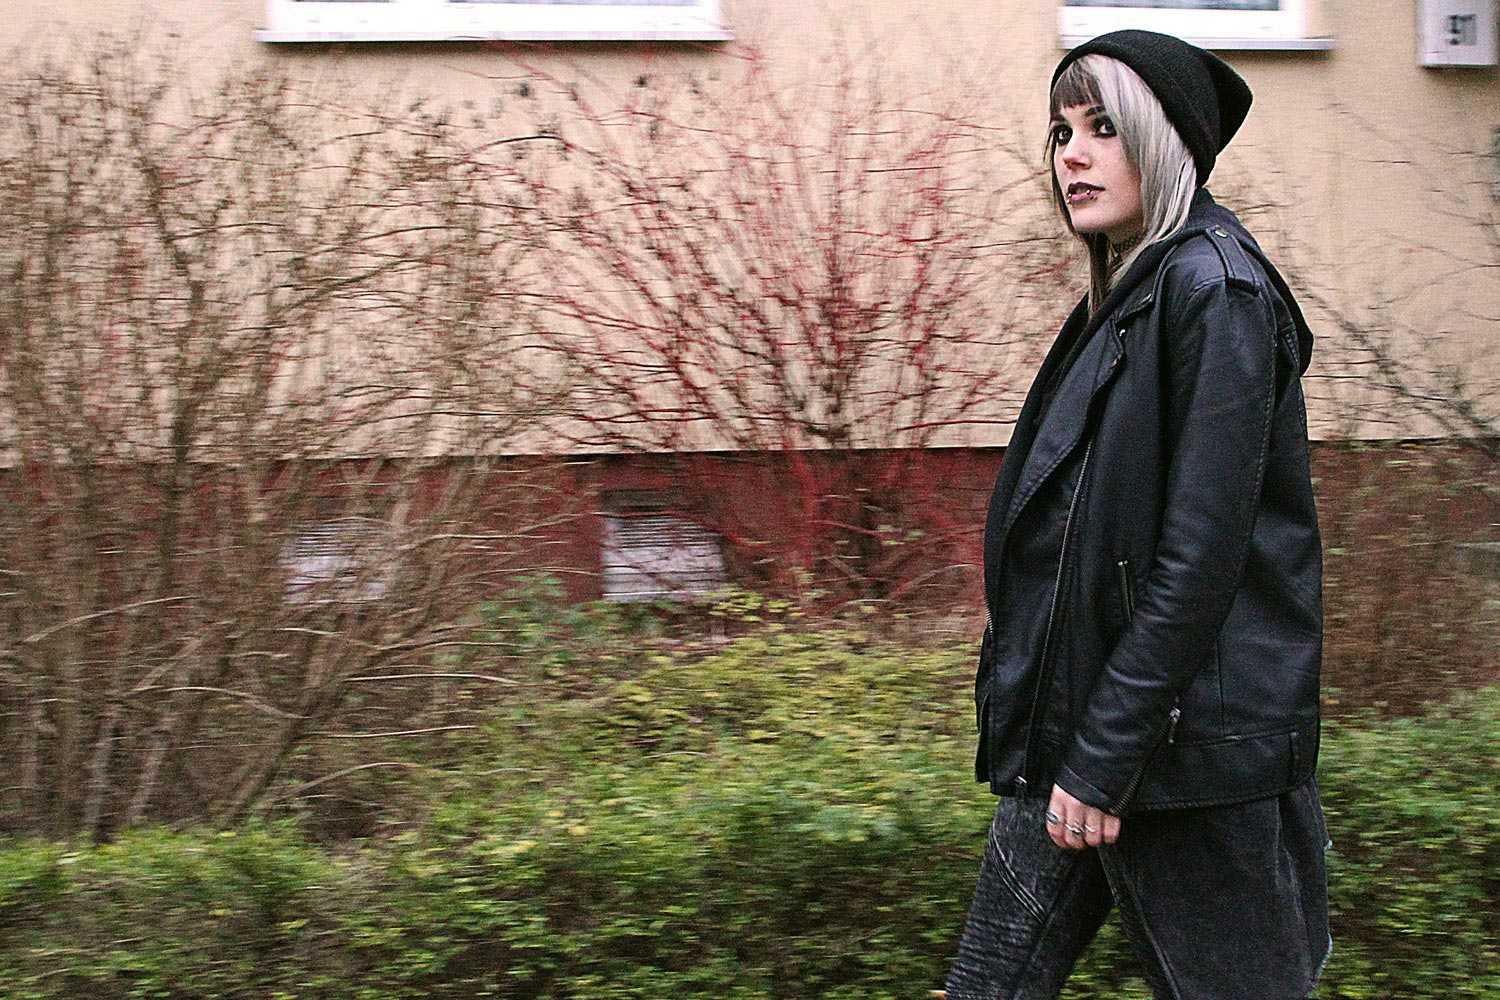 berlin, berlin fashion, berlin streetstyle, berlin fashion blogger, blogger, fashion blogger, punk, grunge, punk fashion, grunge fashion, alternative, alternative fashion, alternative girl, altgirl, snakebites, girls with piercings, scenehair, mode, alternative mode, punk mode, grunge mode, split hair, splithair, girls with tattoos, tattoomädchen, tattoomodel, beanie, knit, strick, kristall, crystal, neacklace, kette, tattoo halsband, tattoo band, la splash latte confession, unif, trench boot, plateau, plateau boots, comat boots, leder, kunstleder, lederjacke, kunstlederjacke, leatherjacket, vegan leather, vegan leather jacket, h&m, shirt, all black, simple, minimal look, , jeans, moto jeans, acid wash, acid, waschung, oversized, oversized jacke,